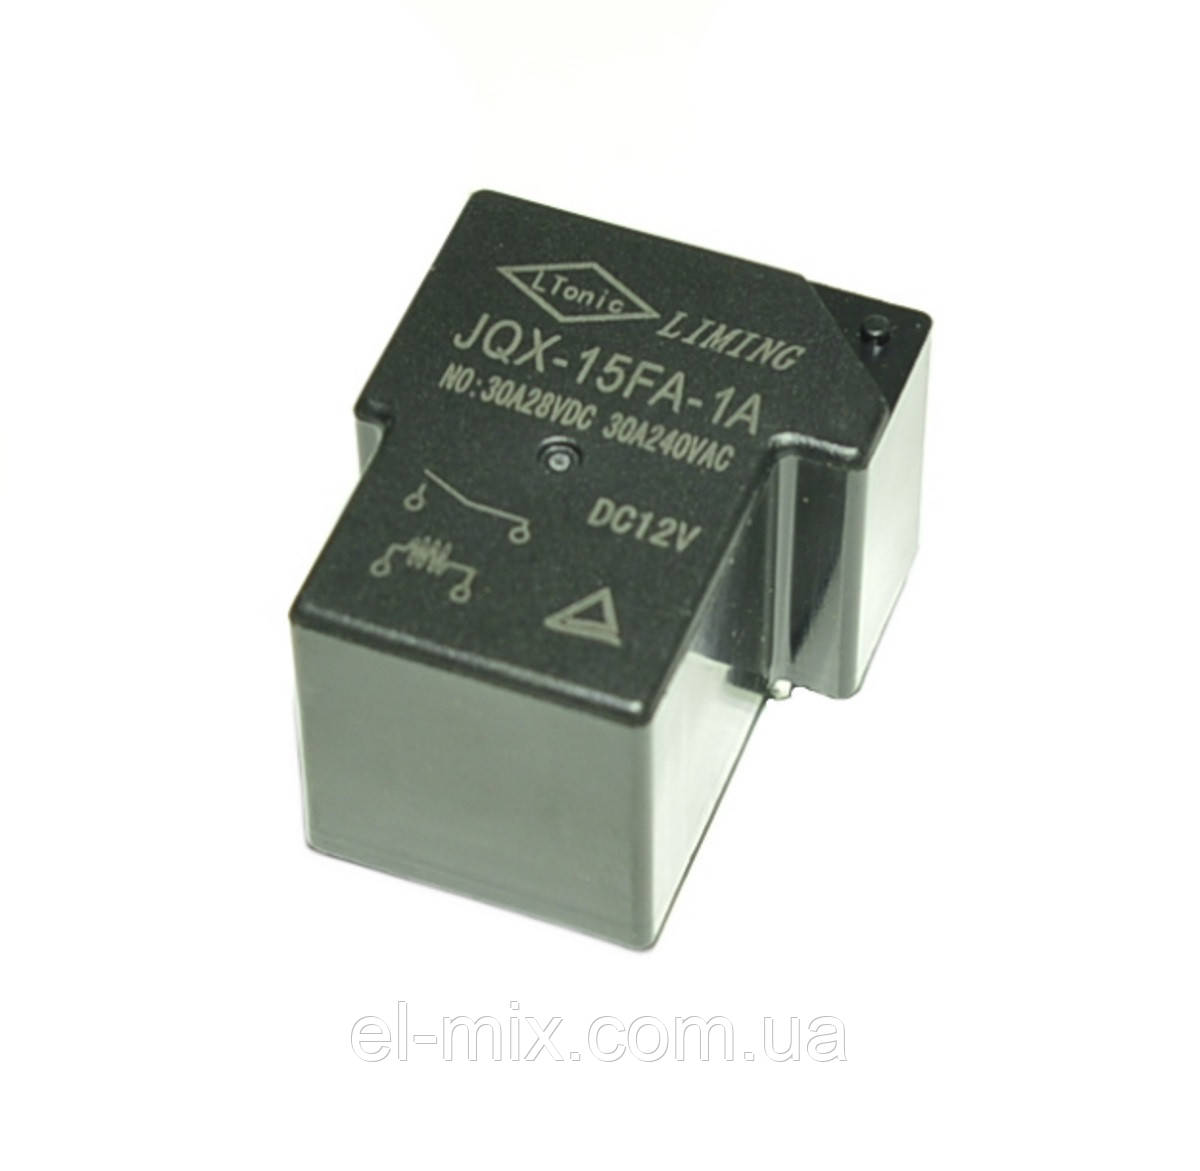 Реле 12V 1группа  JQX-15FA-1A (30A 240VАС) 4pin off-on Liming  PRE0011